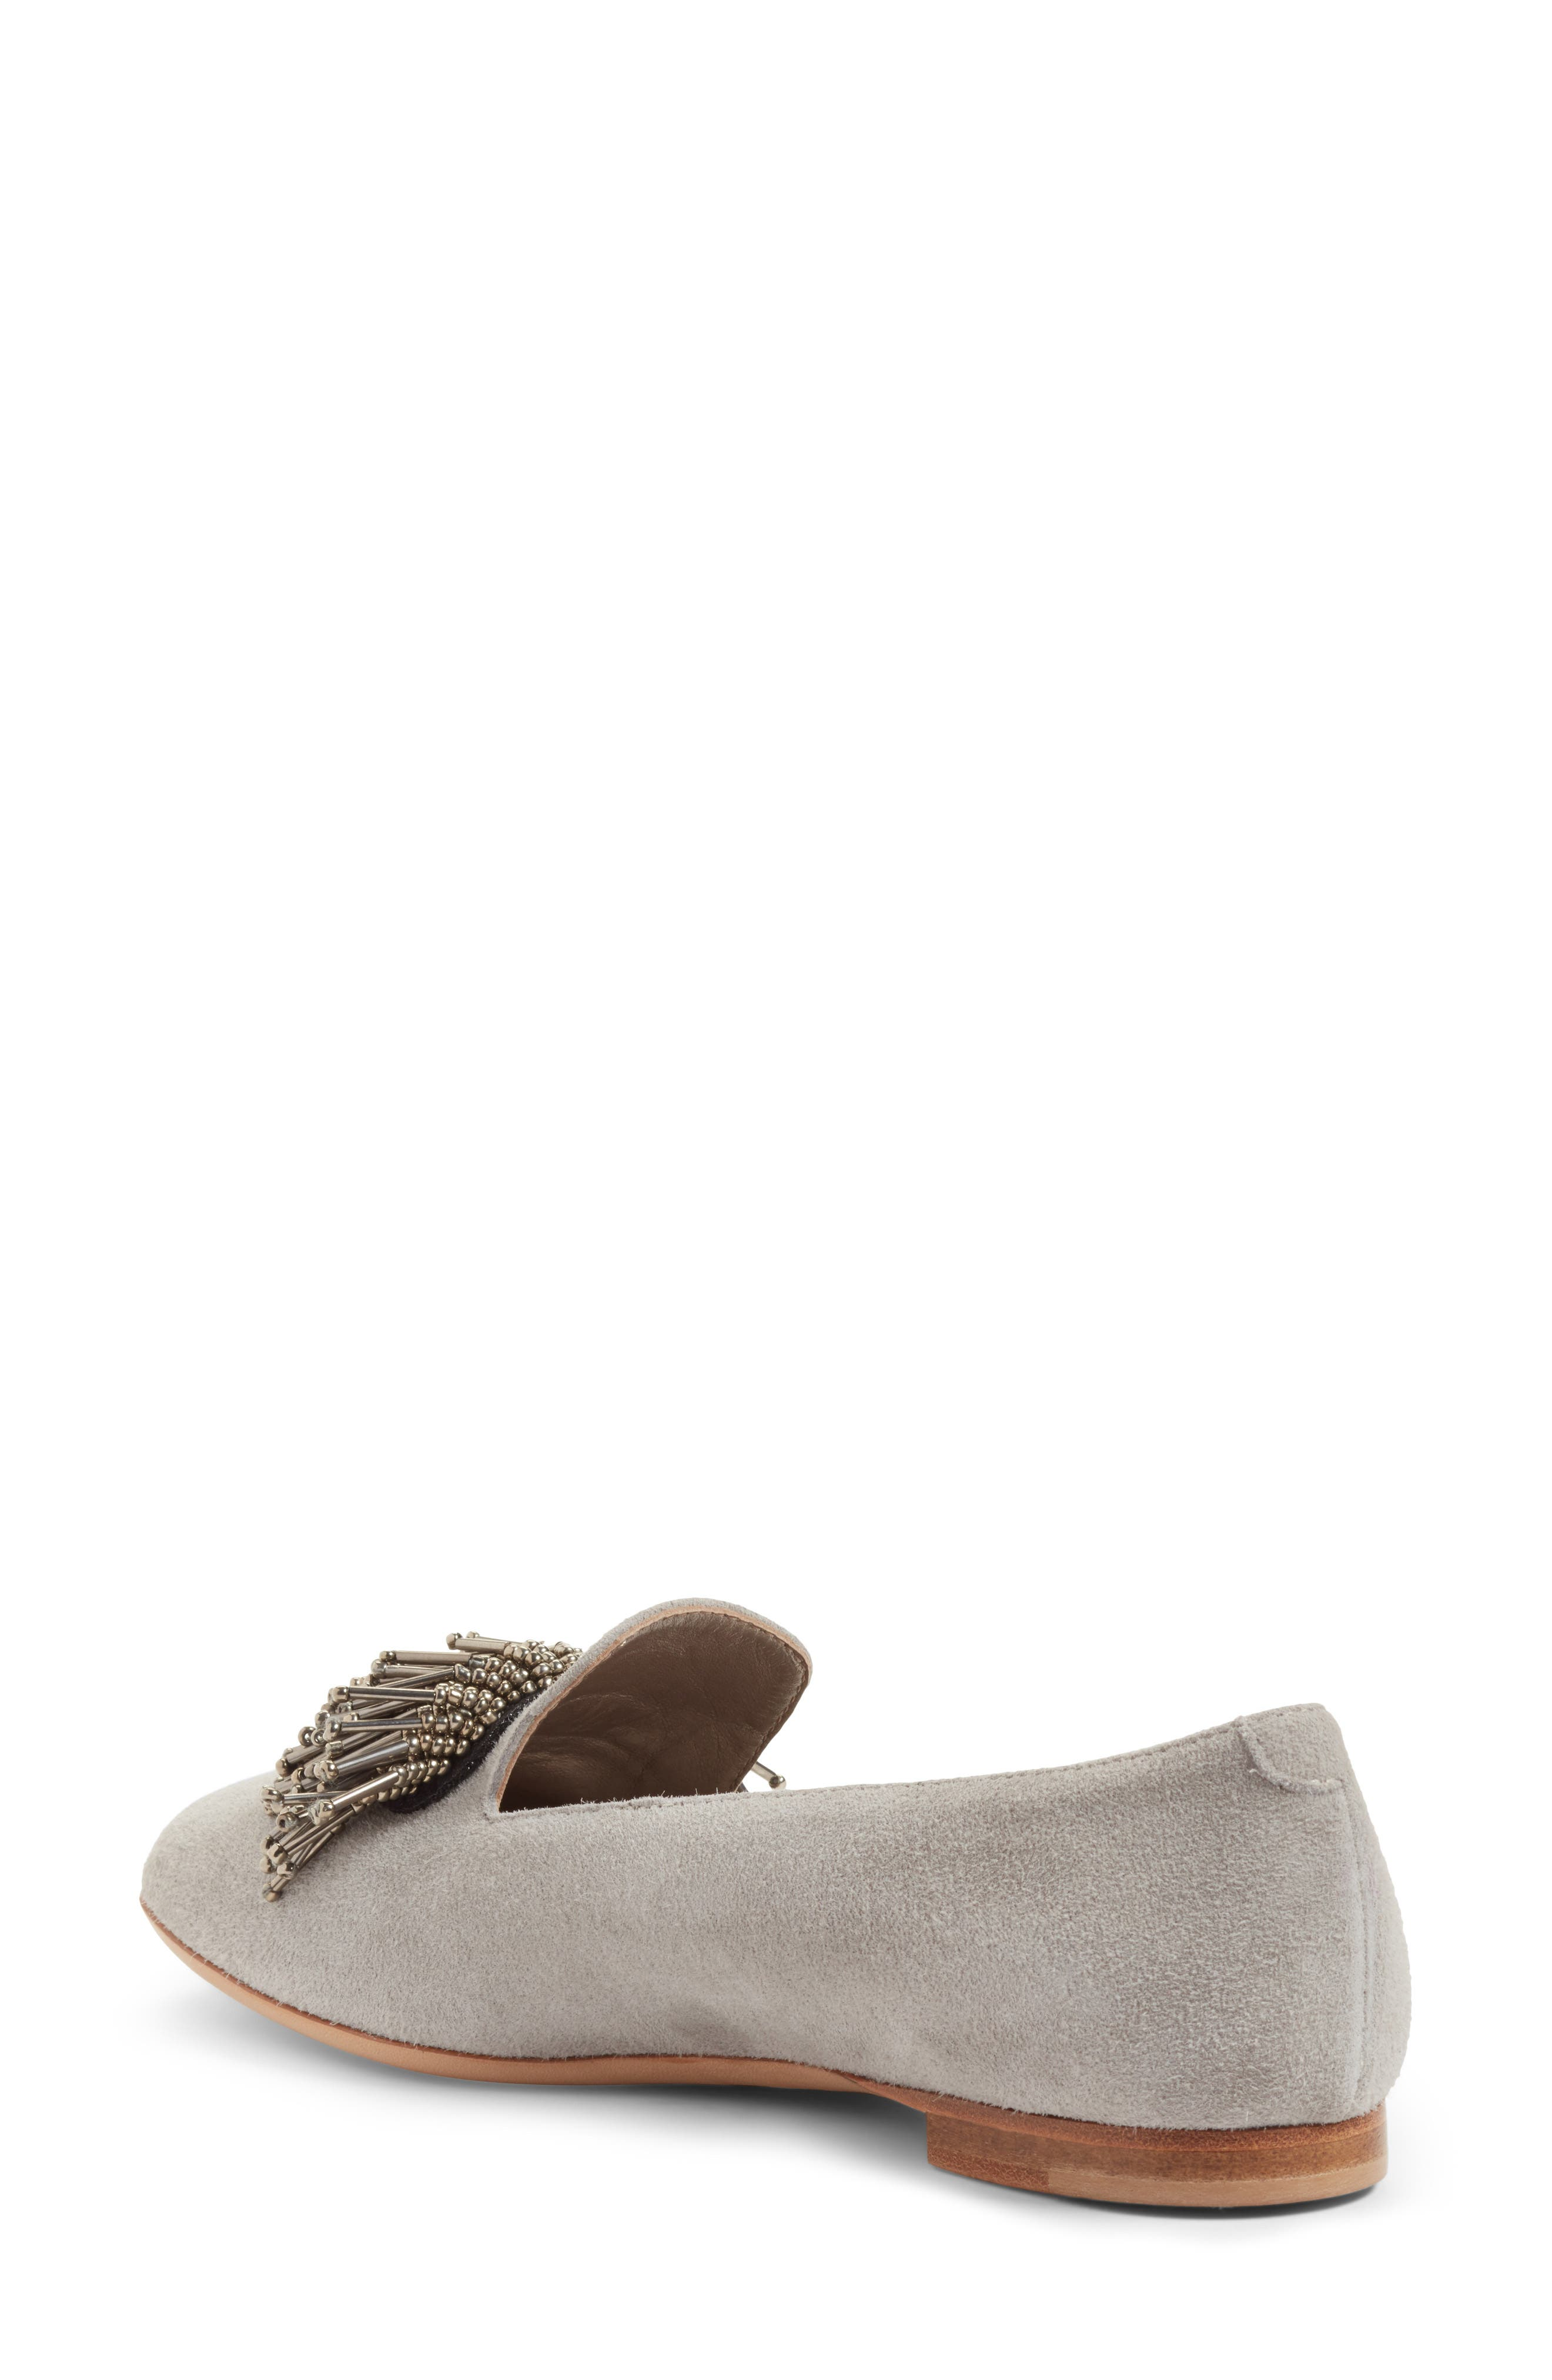 Beaded Loafer,                             Alternate thumbnail 2, color,                             Cube Grey Suede